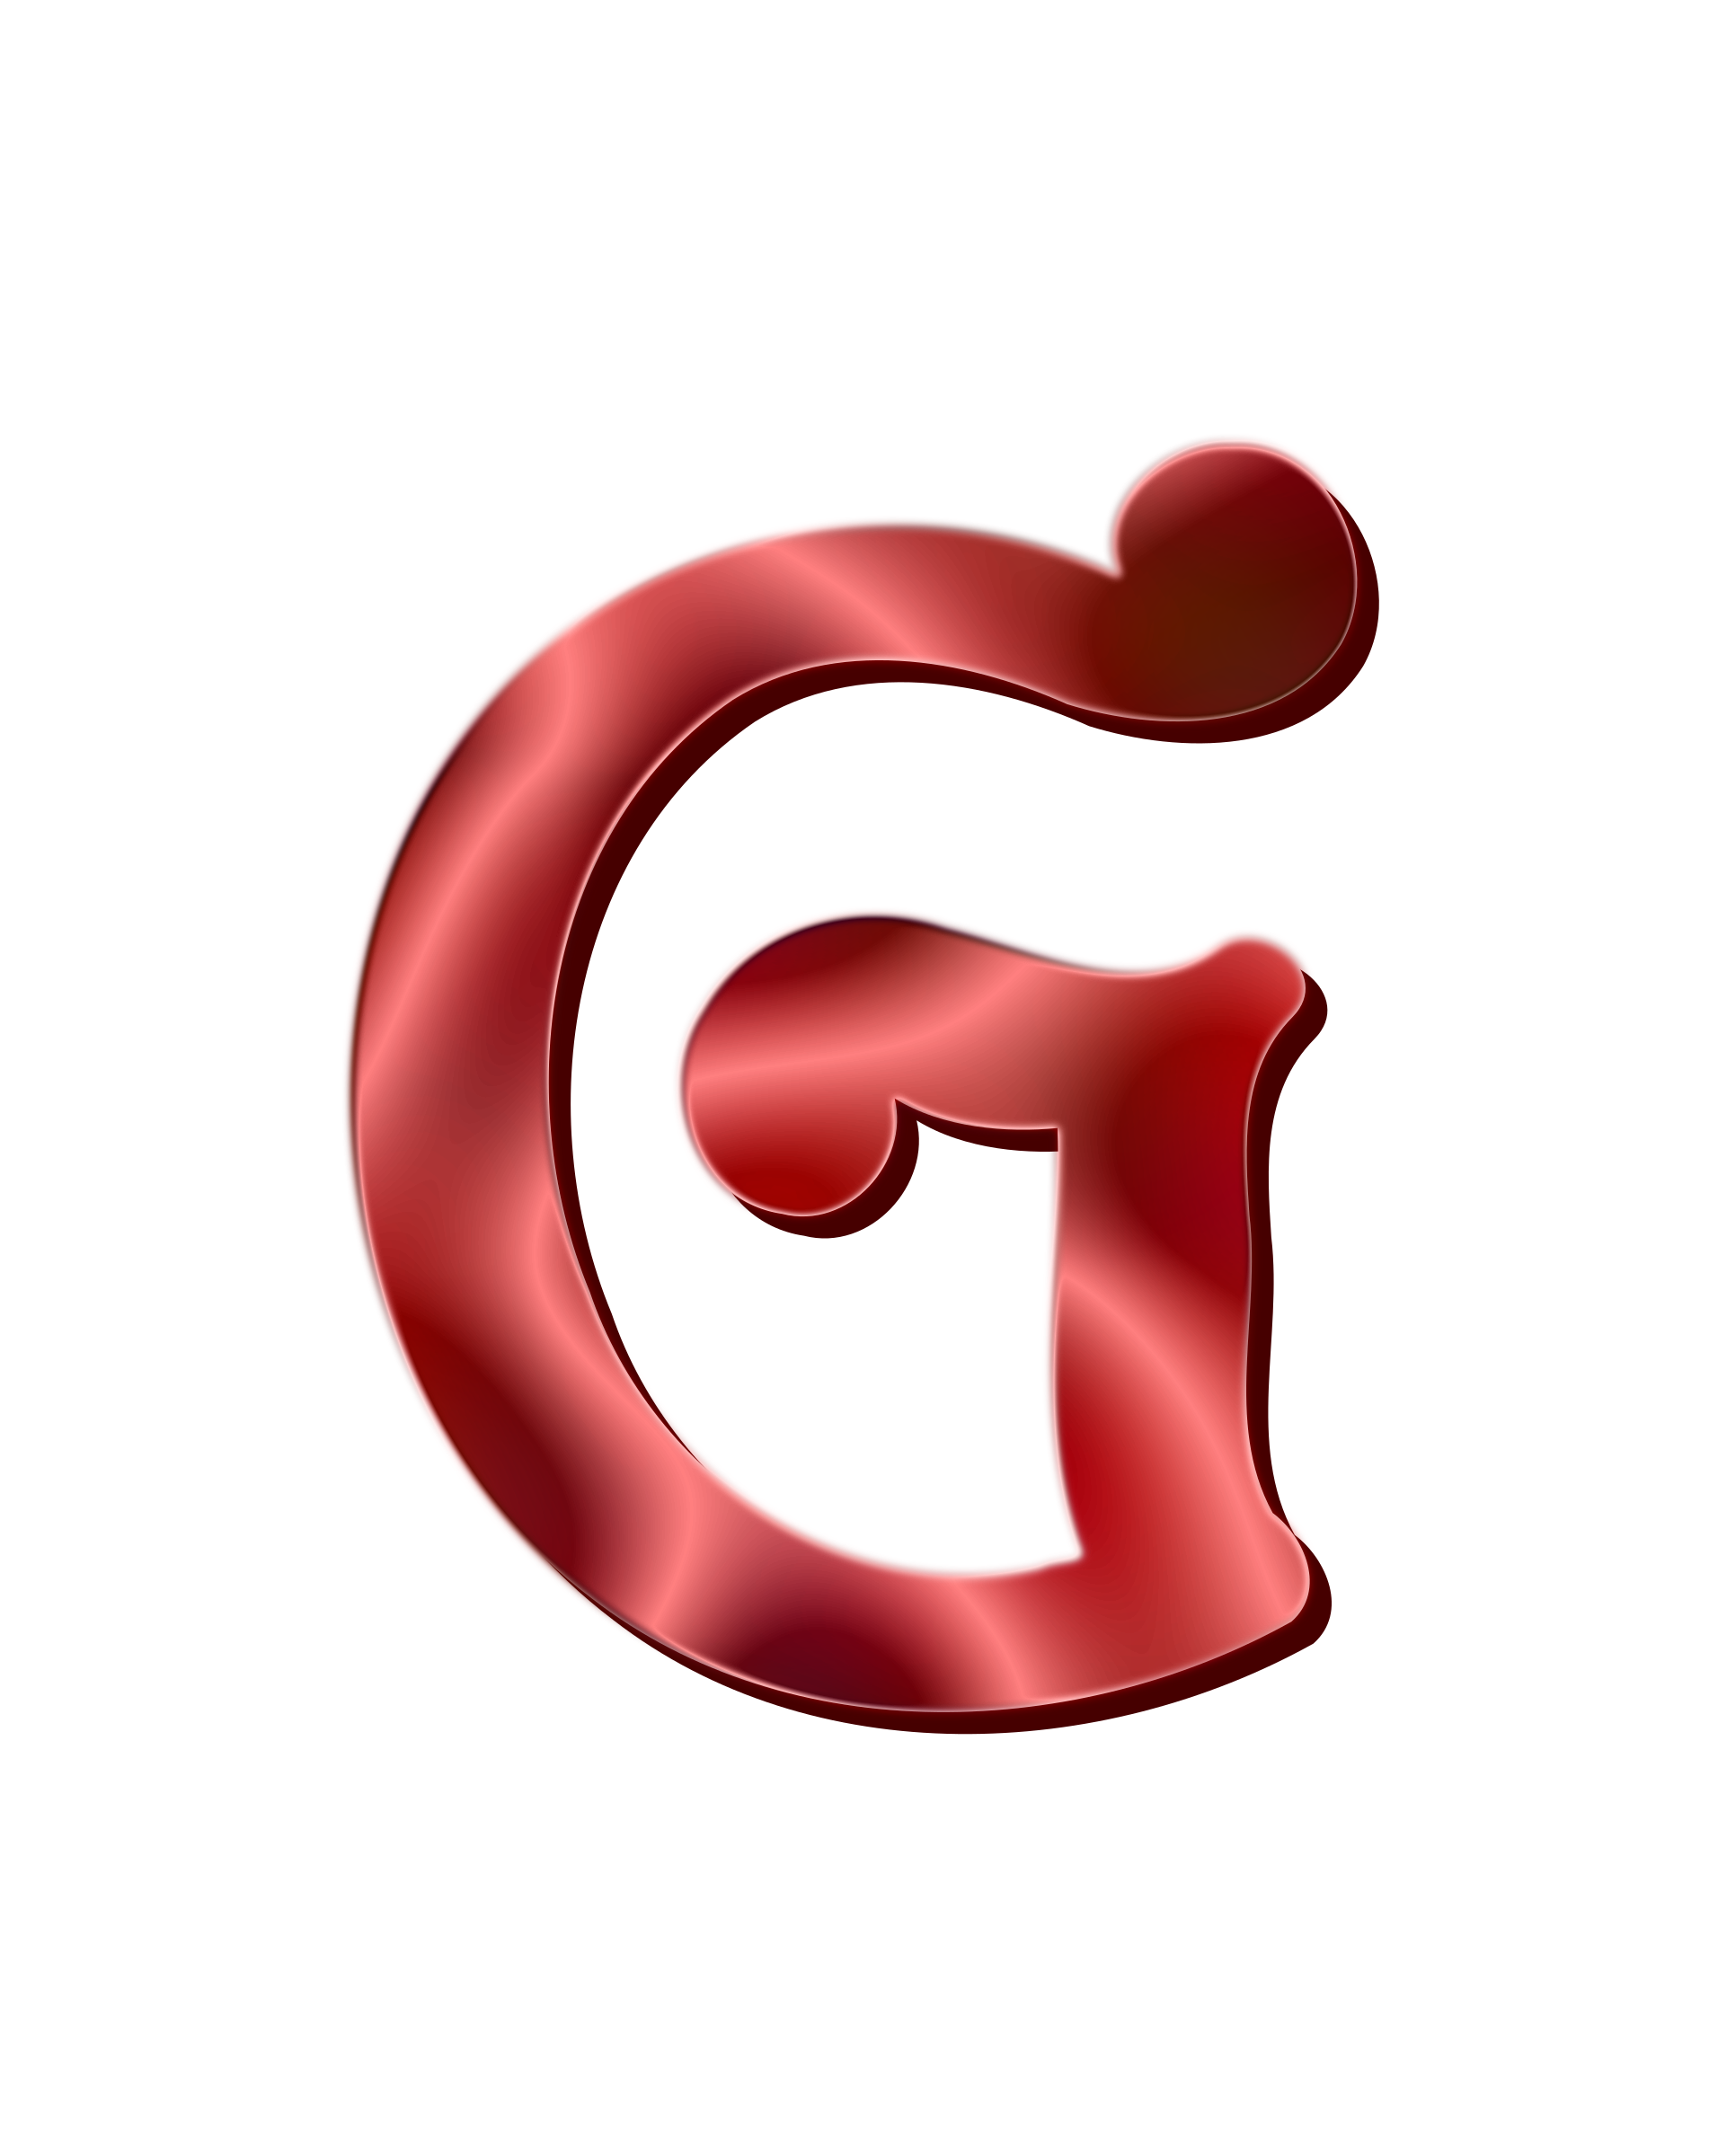 Transparent g big letter. Alphabet icons png free